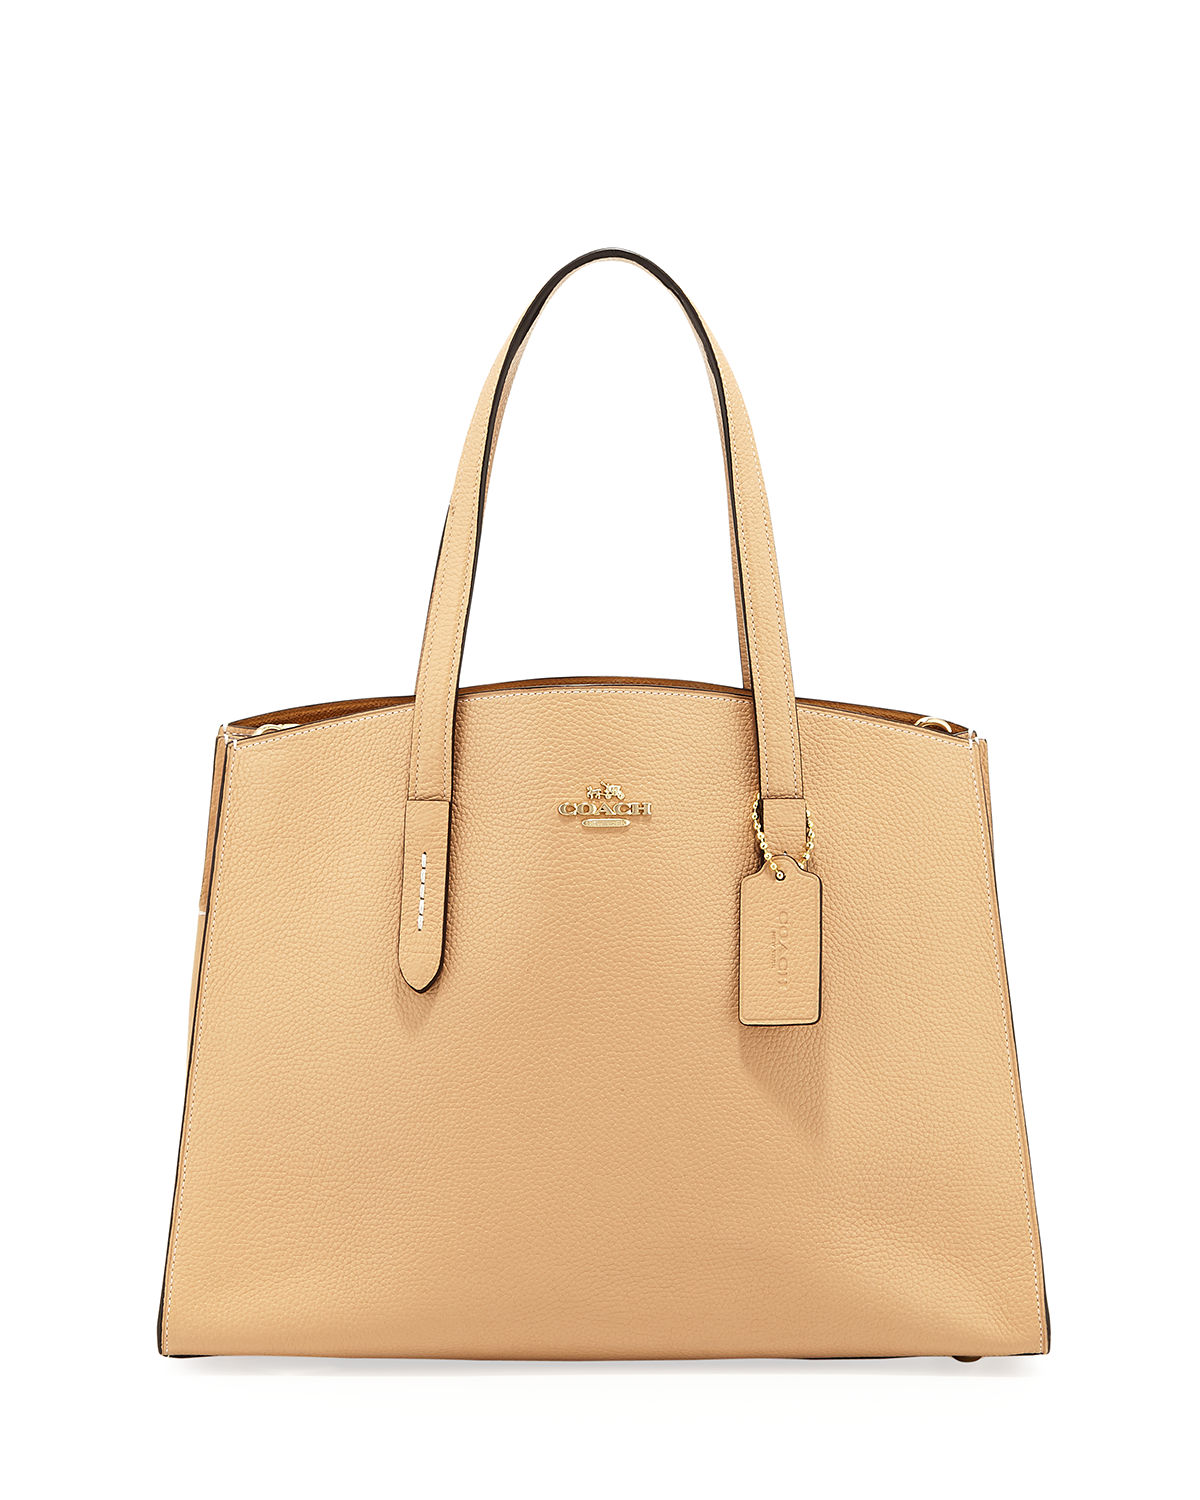 Luxefinds Fashion Shopping Engine Coach Swagger 20 In Pebbled Leather Peach Charlie Polished Carryall Tote Bag